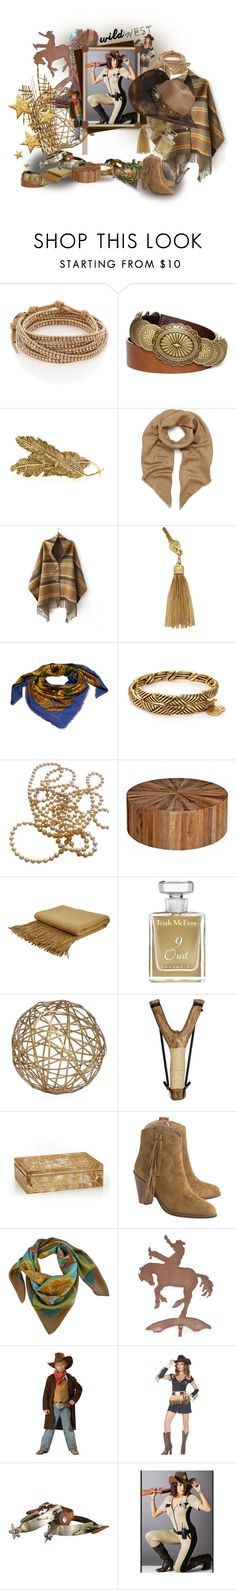 """WW"" by meliot12 ❤ liked on Polyvore featuring Chan Luu, Mixit, Pluie, Mulberry, Lanvin, Chanel, Alex and Ani, Dot & Bo, Trish McEvoy and Frontgate"